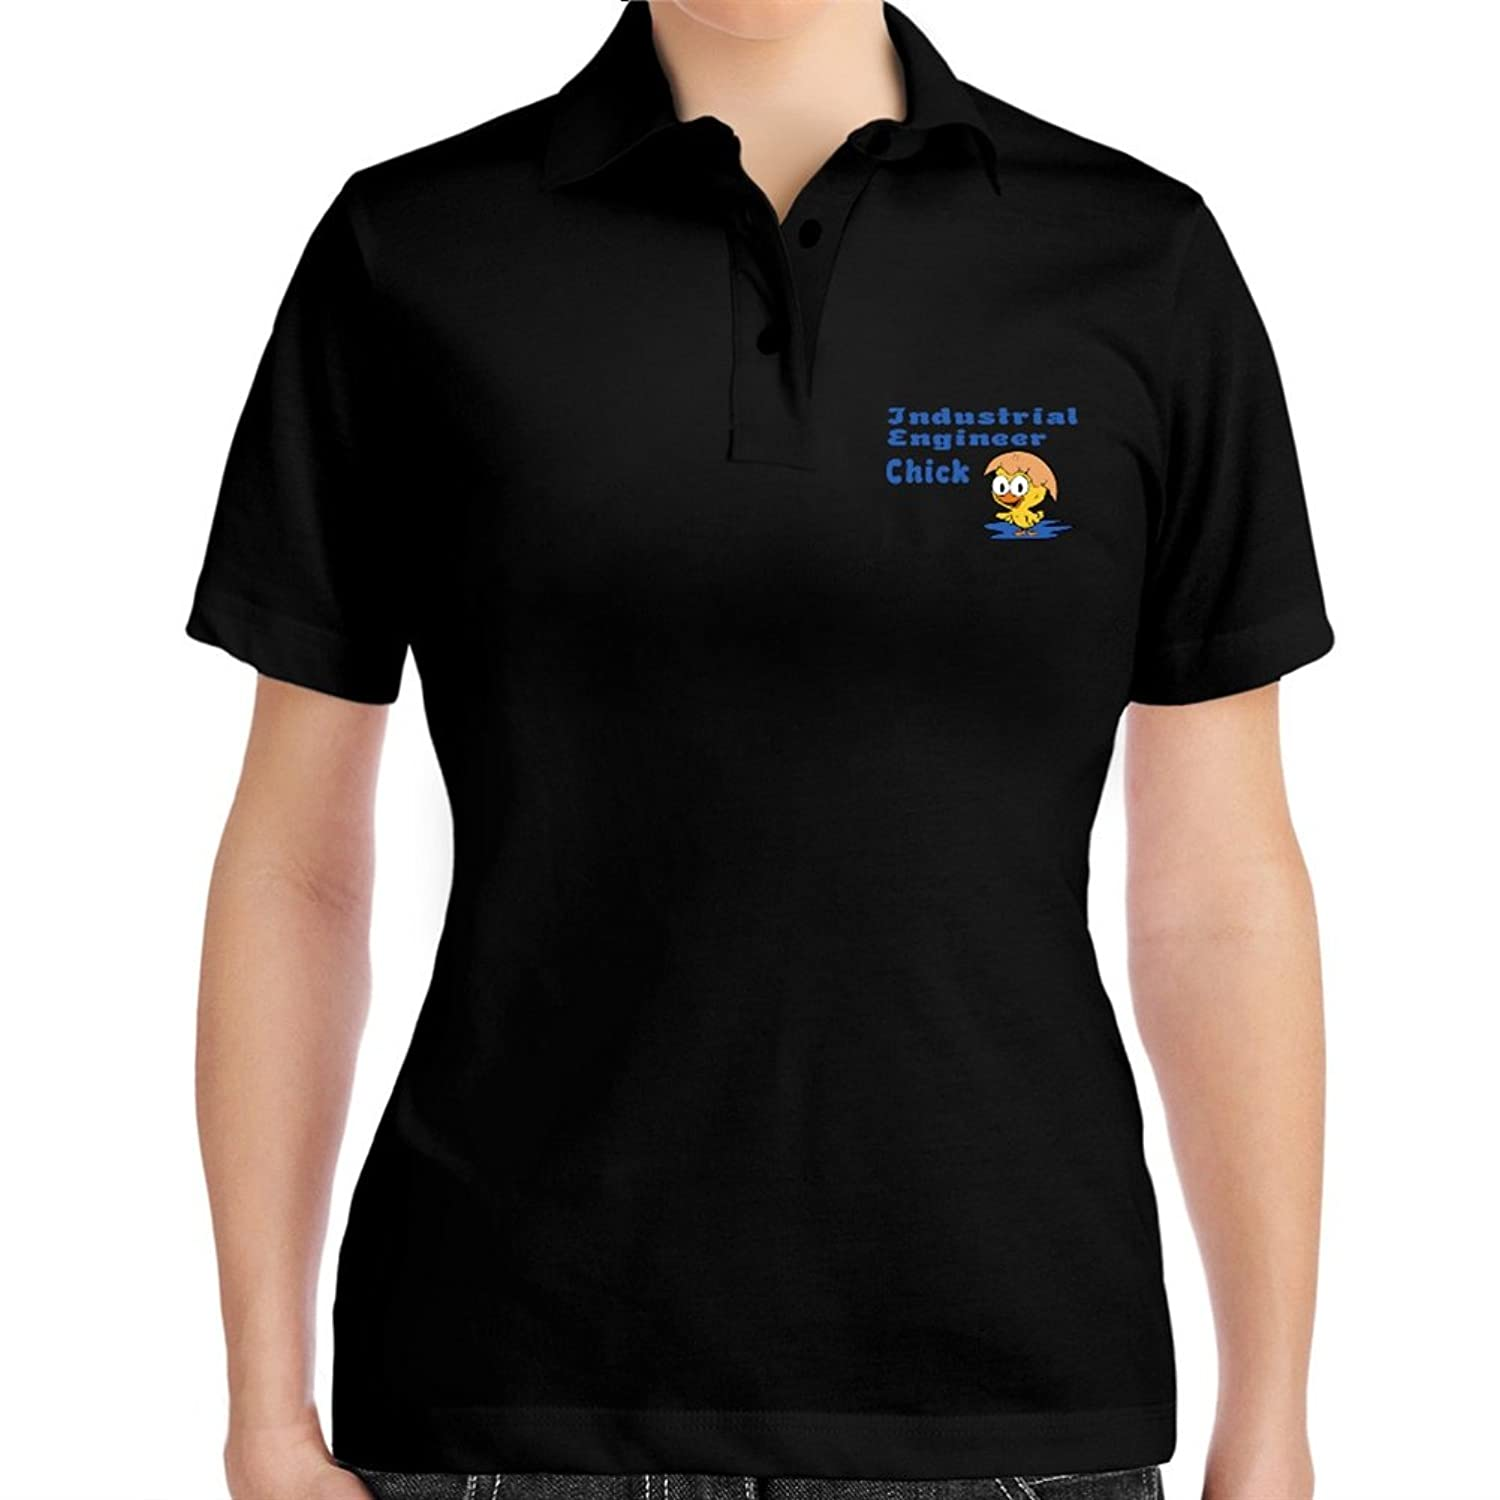 Industrial Engineer chick Women Polo Shirt